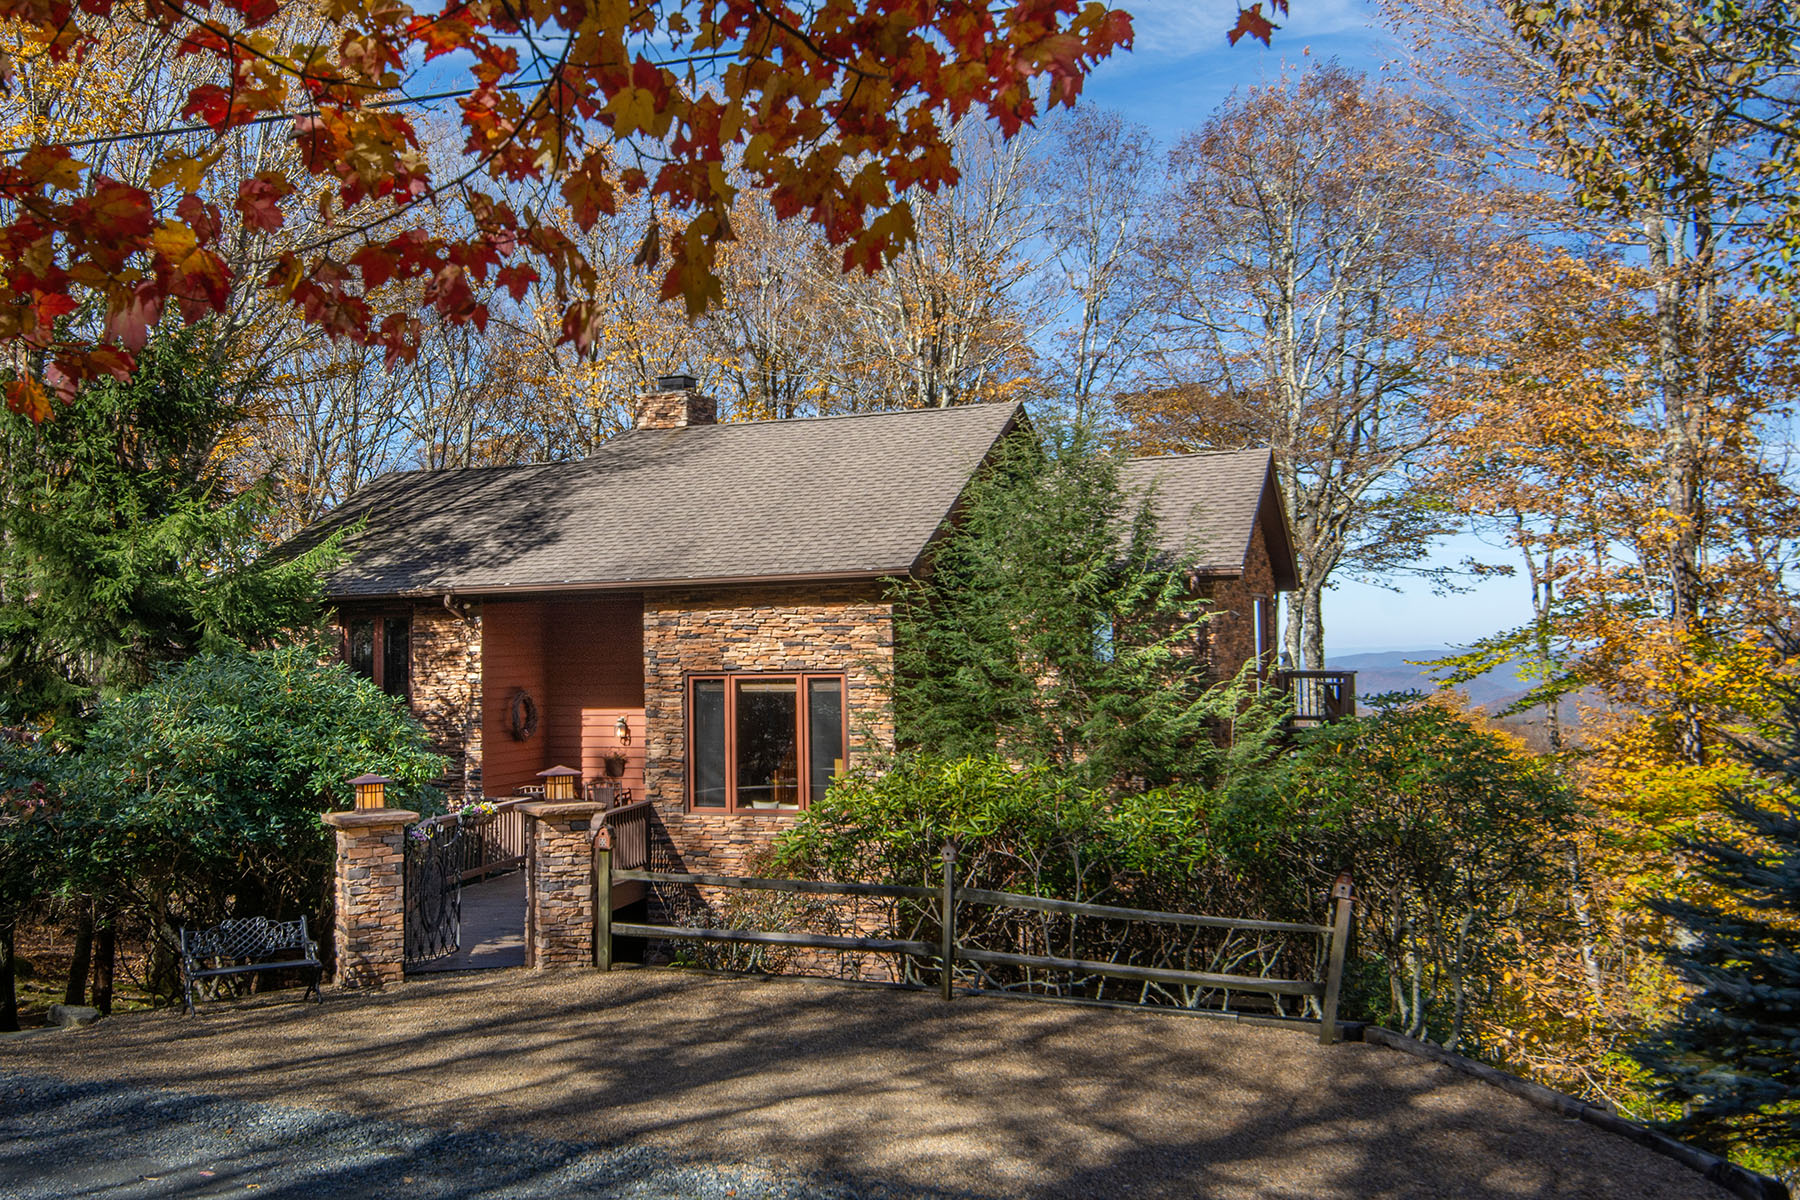 Single Family Homes for Sale at BEECH MOUNTAIN - THE CLIFFS 102 Hummingbird Ln Beech Mountain, North Carolina 28604 United States